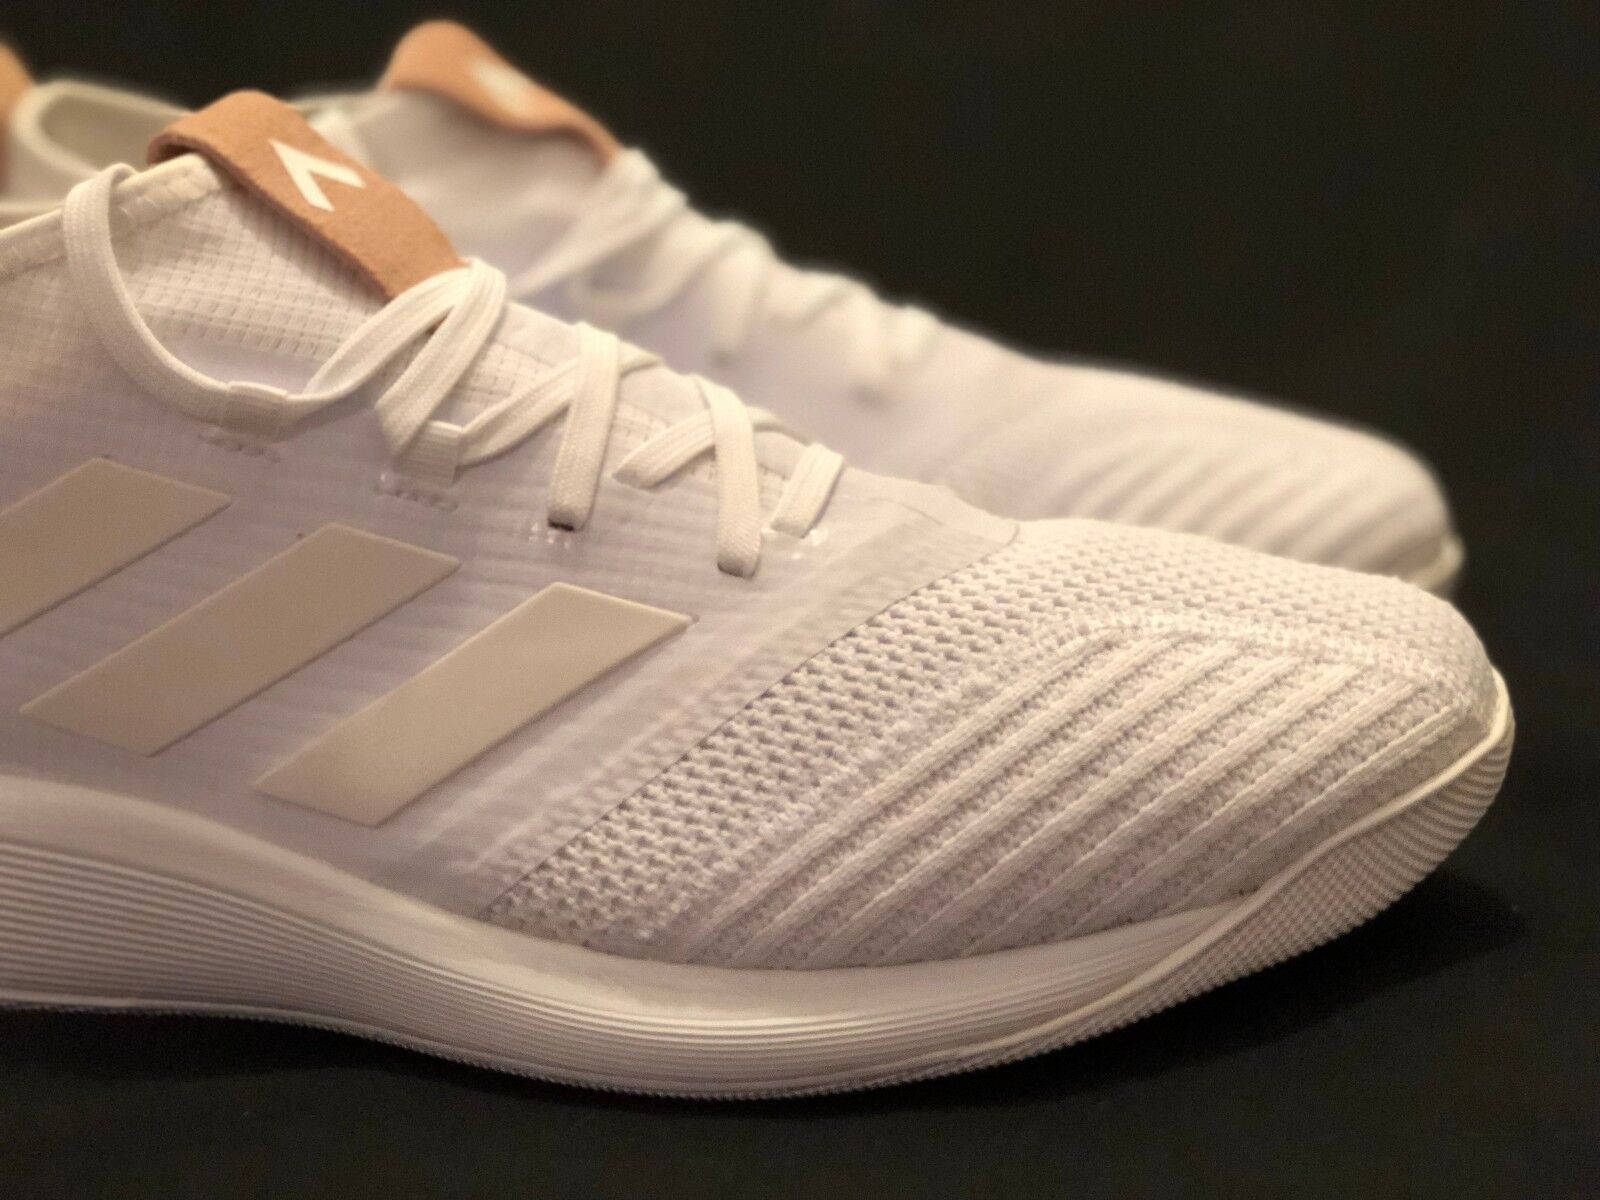 Adidas x KITH Ace 17+ KITH TR White Price reduction DS Seasonal price cuts, discount benefits